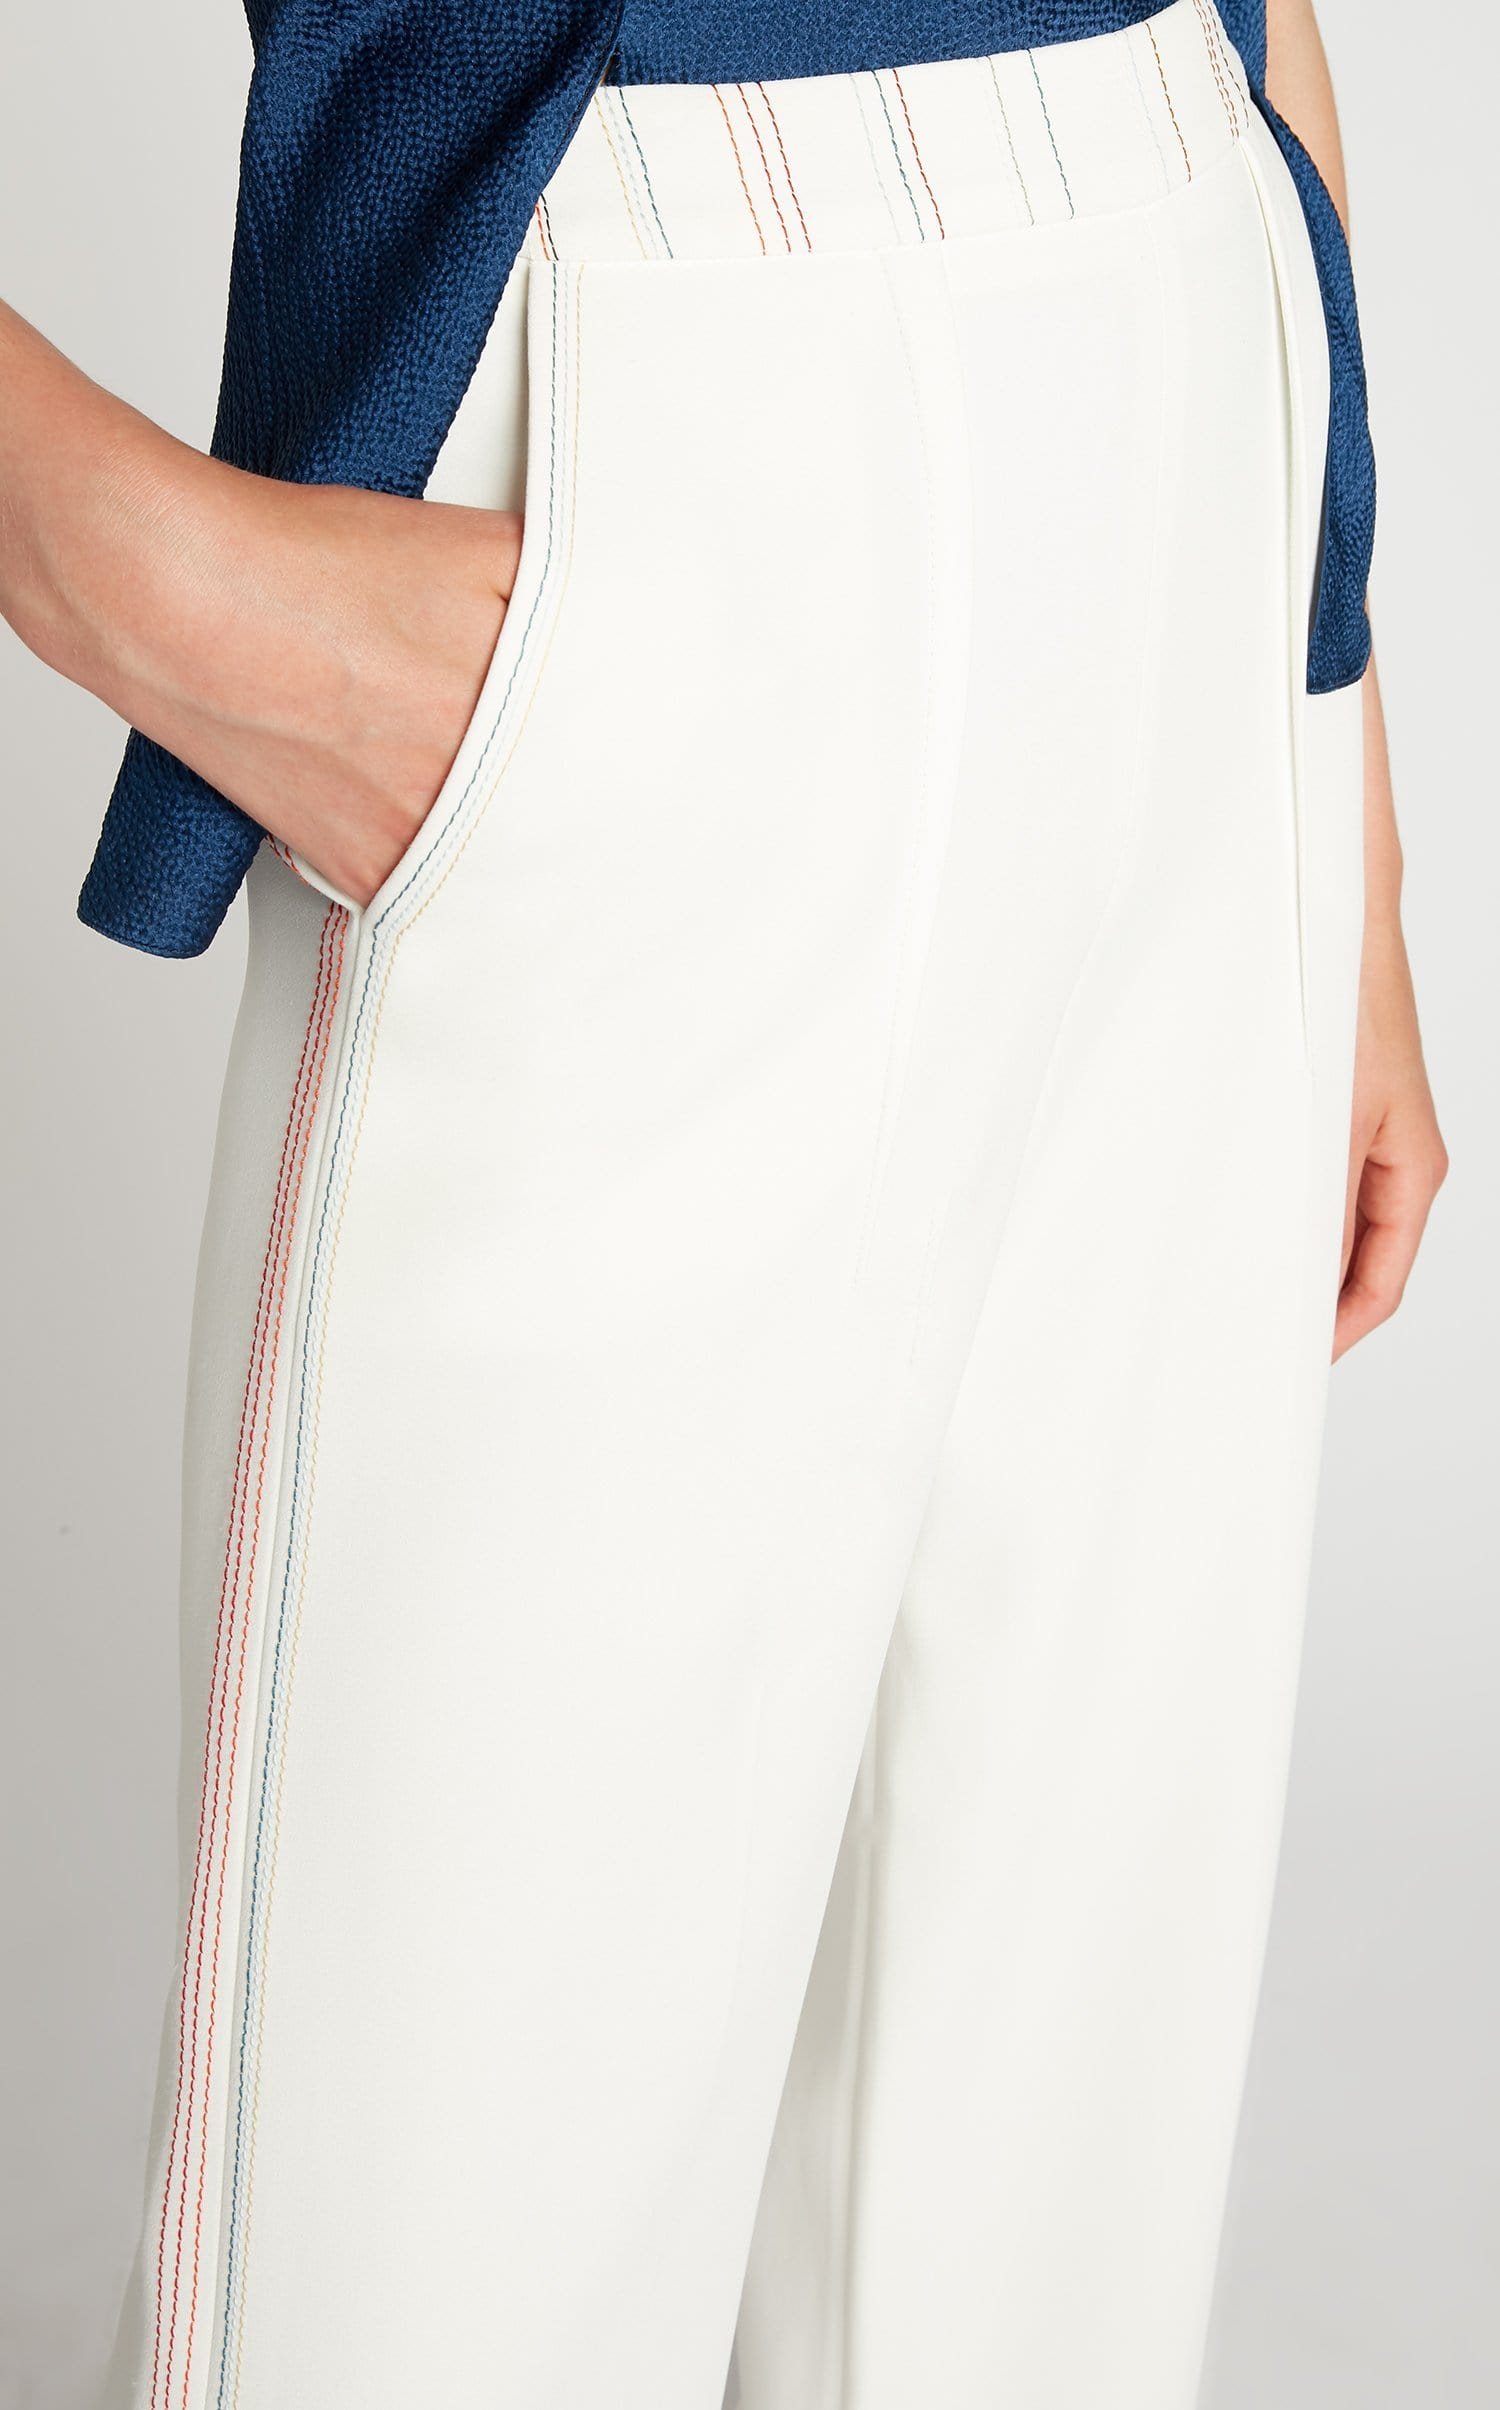 Groves Trouser In White Multi from Roland Mouret